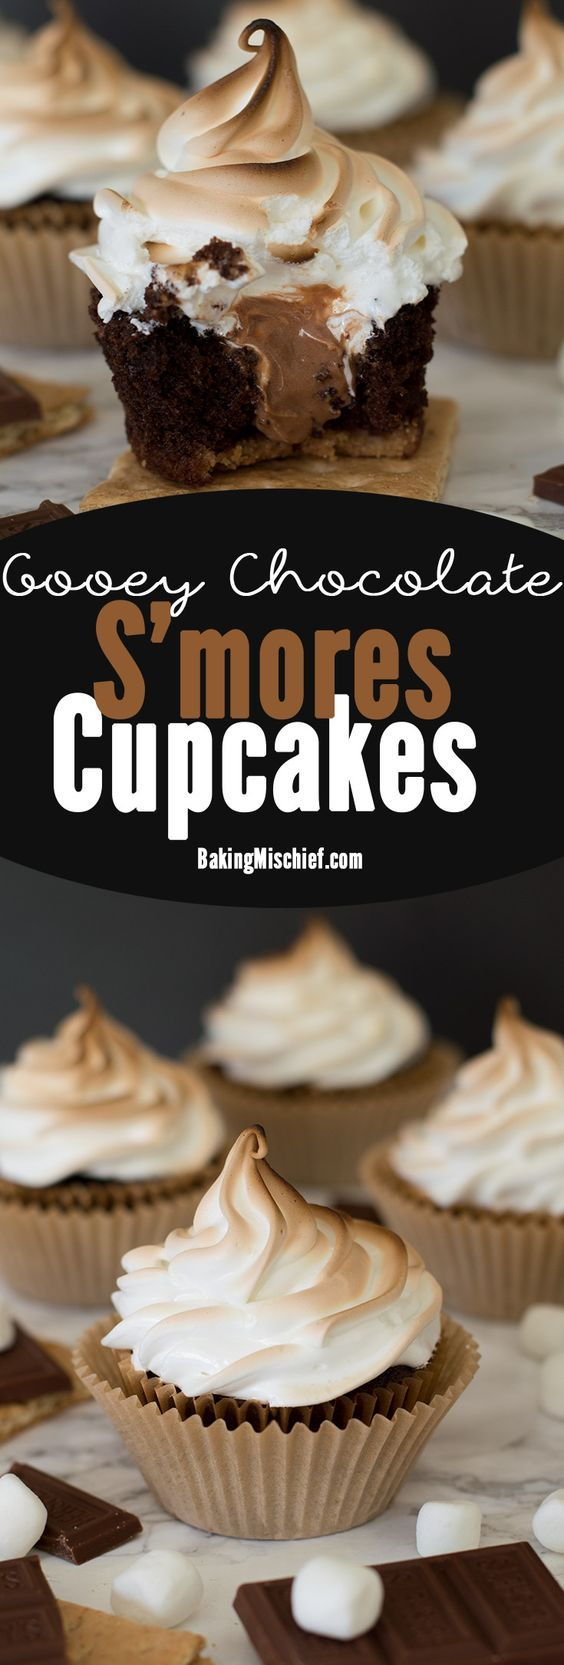 These are the perfect s'mores cupcakes: a graham cracker base soft and decadent chocolate cake gooey Hershey's chocolate buttercream center and toasted marshmallow frosting.